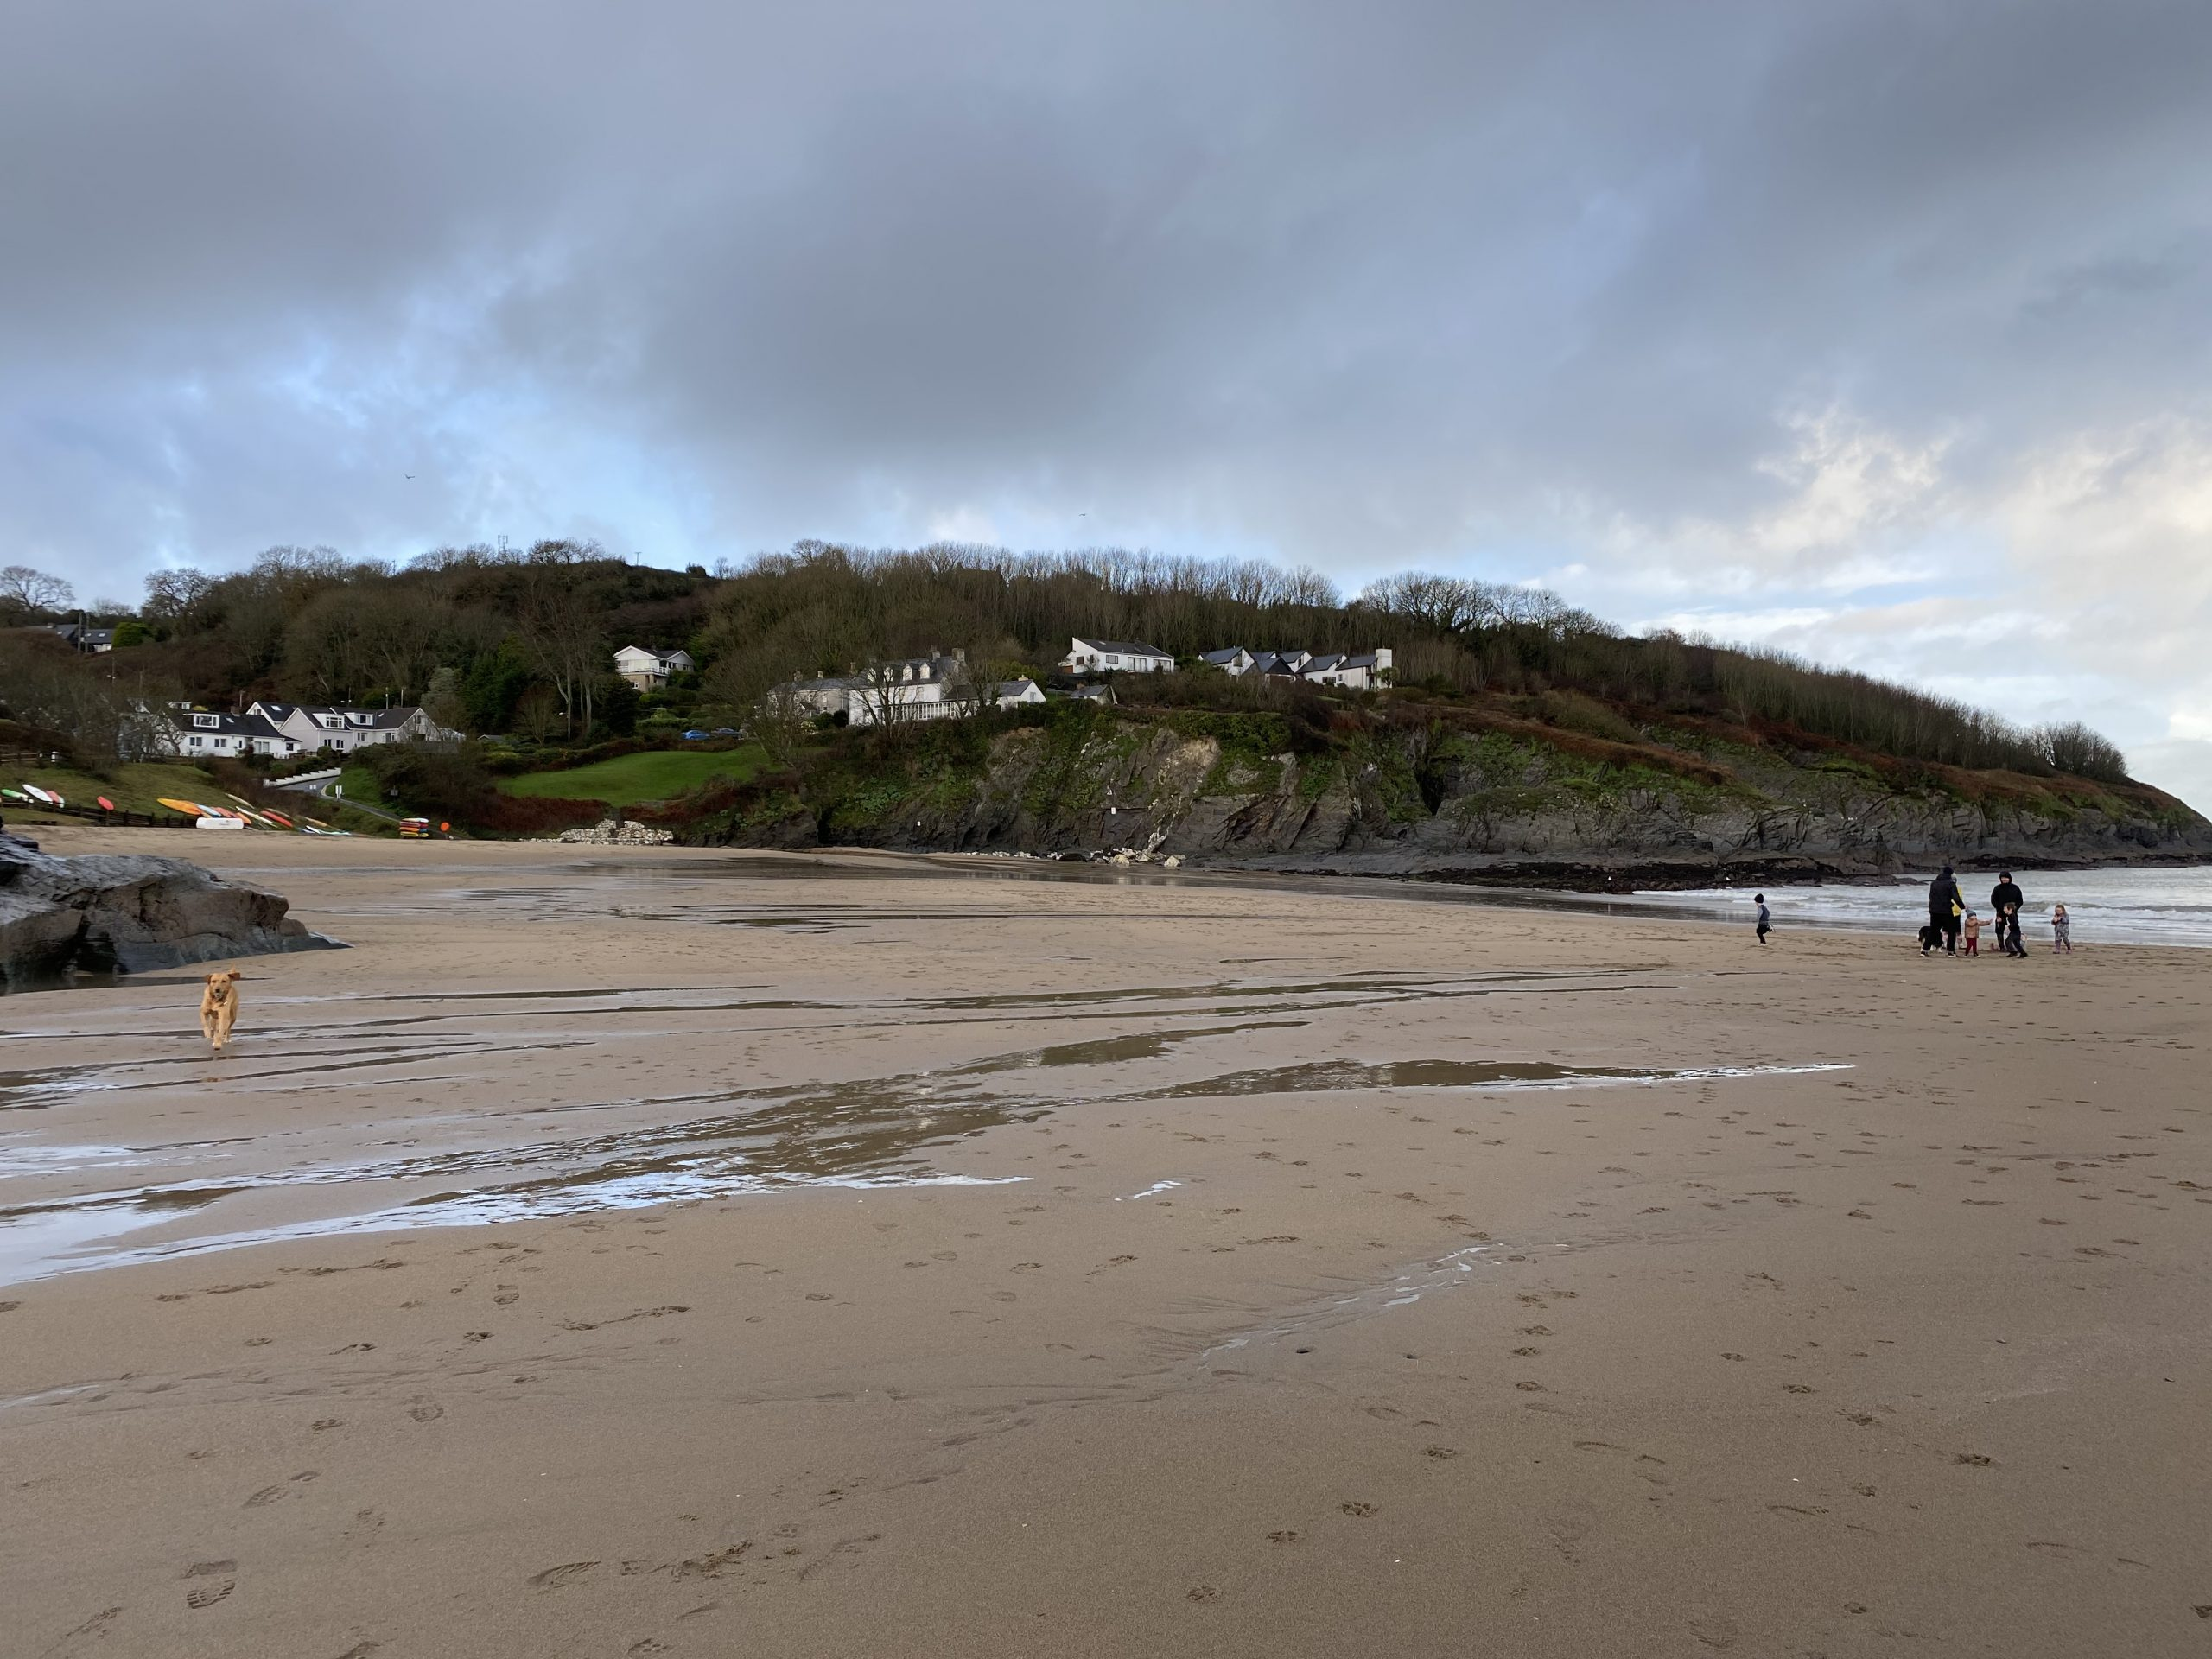 On the beach at Aberporth